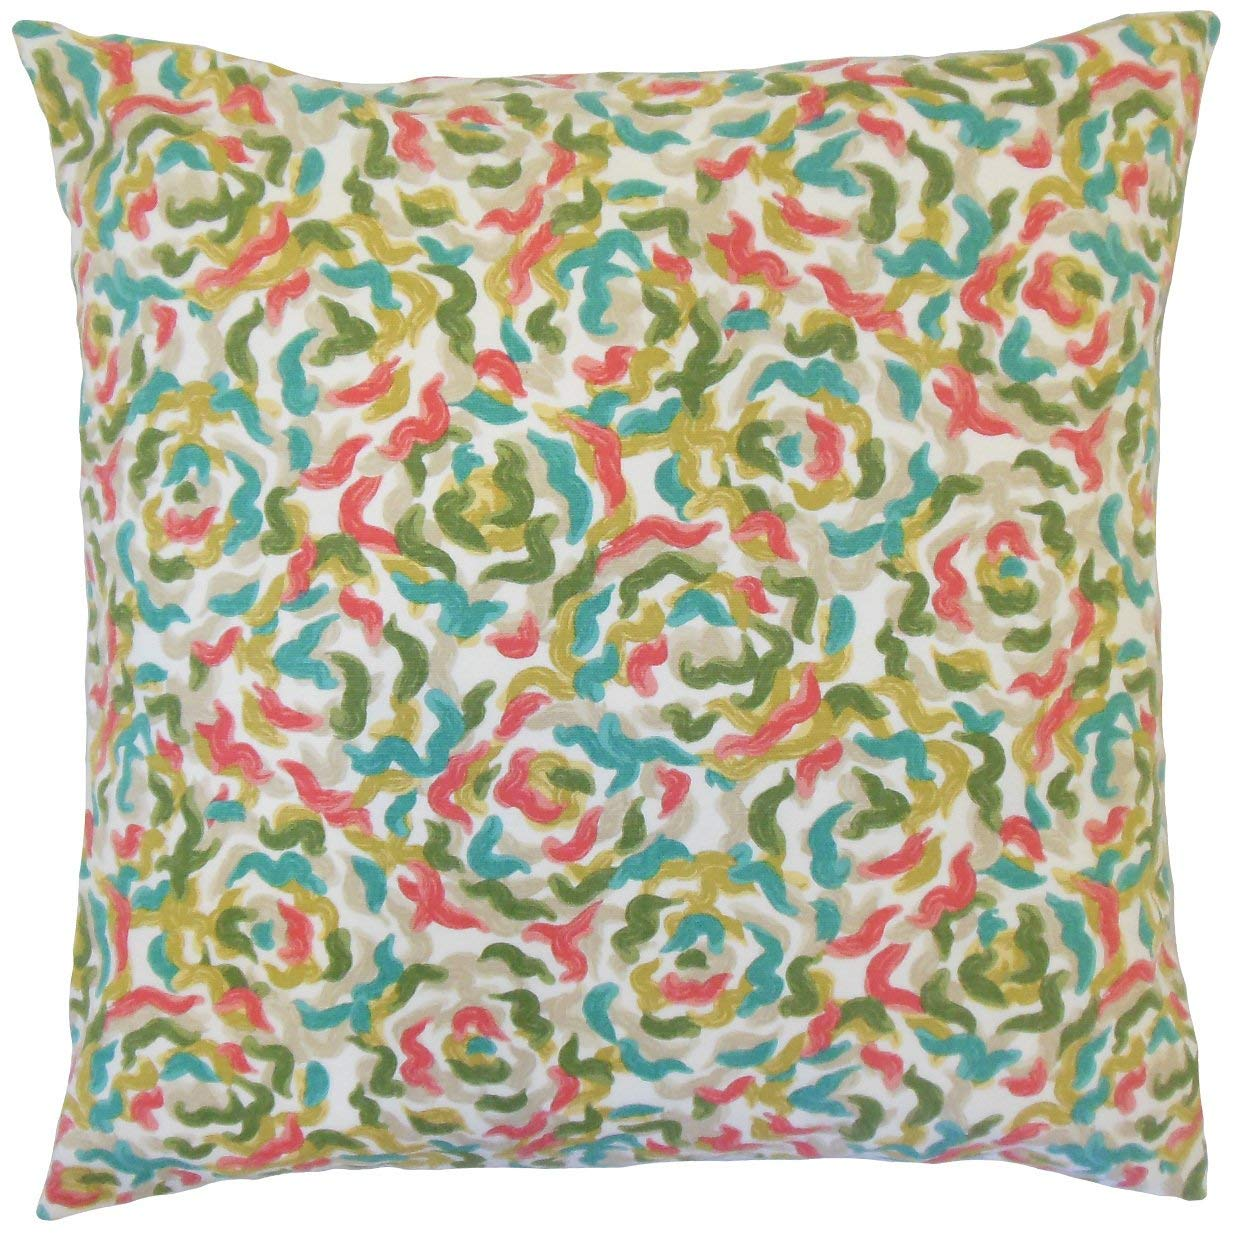 The Pillow Collection Junayd Graphic Coral Down Filled Throw Pillow